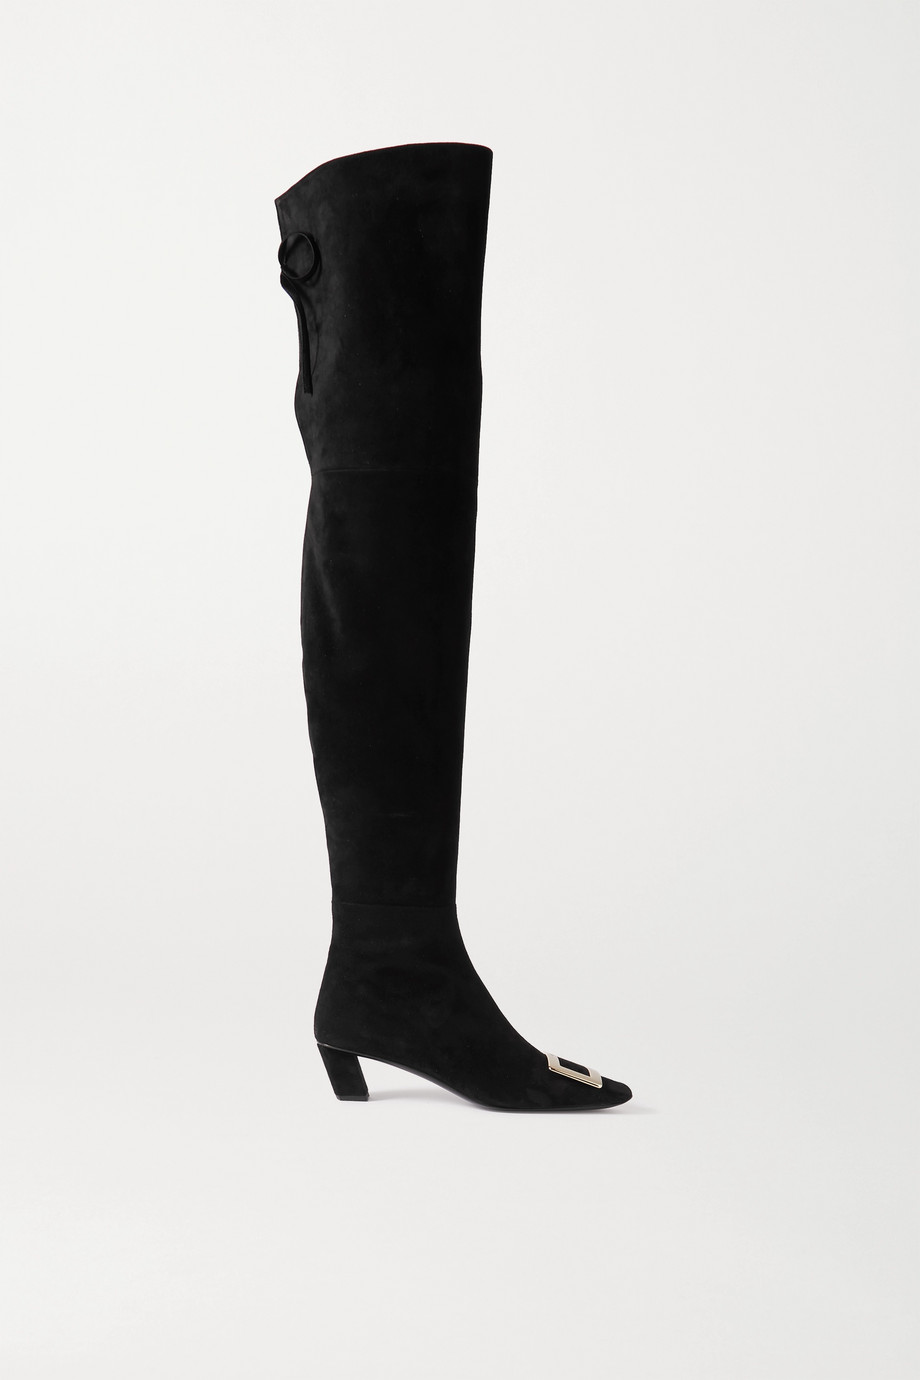 Roger Vivier Belle Vivier suede over-the-knee boots